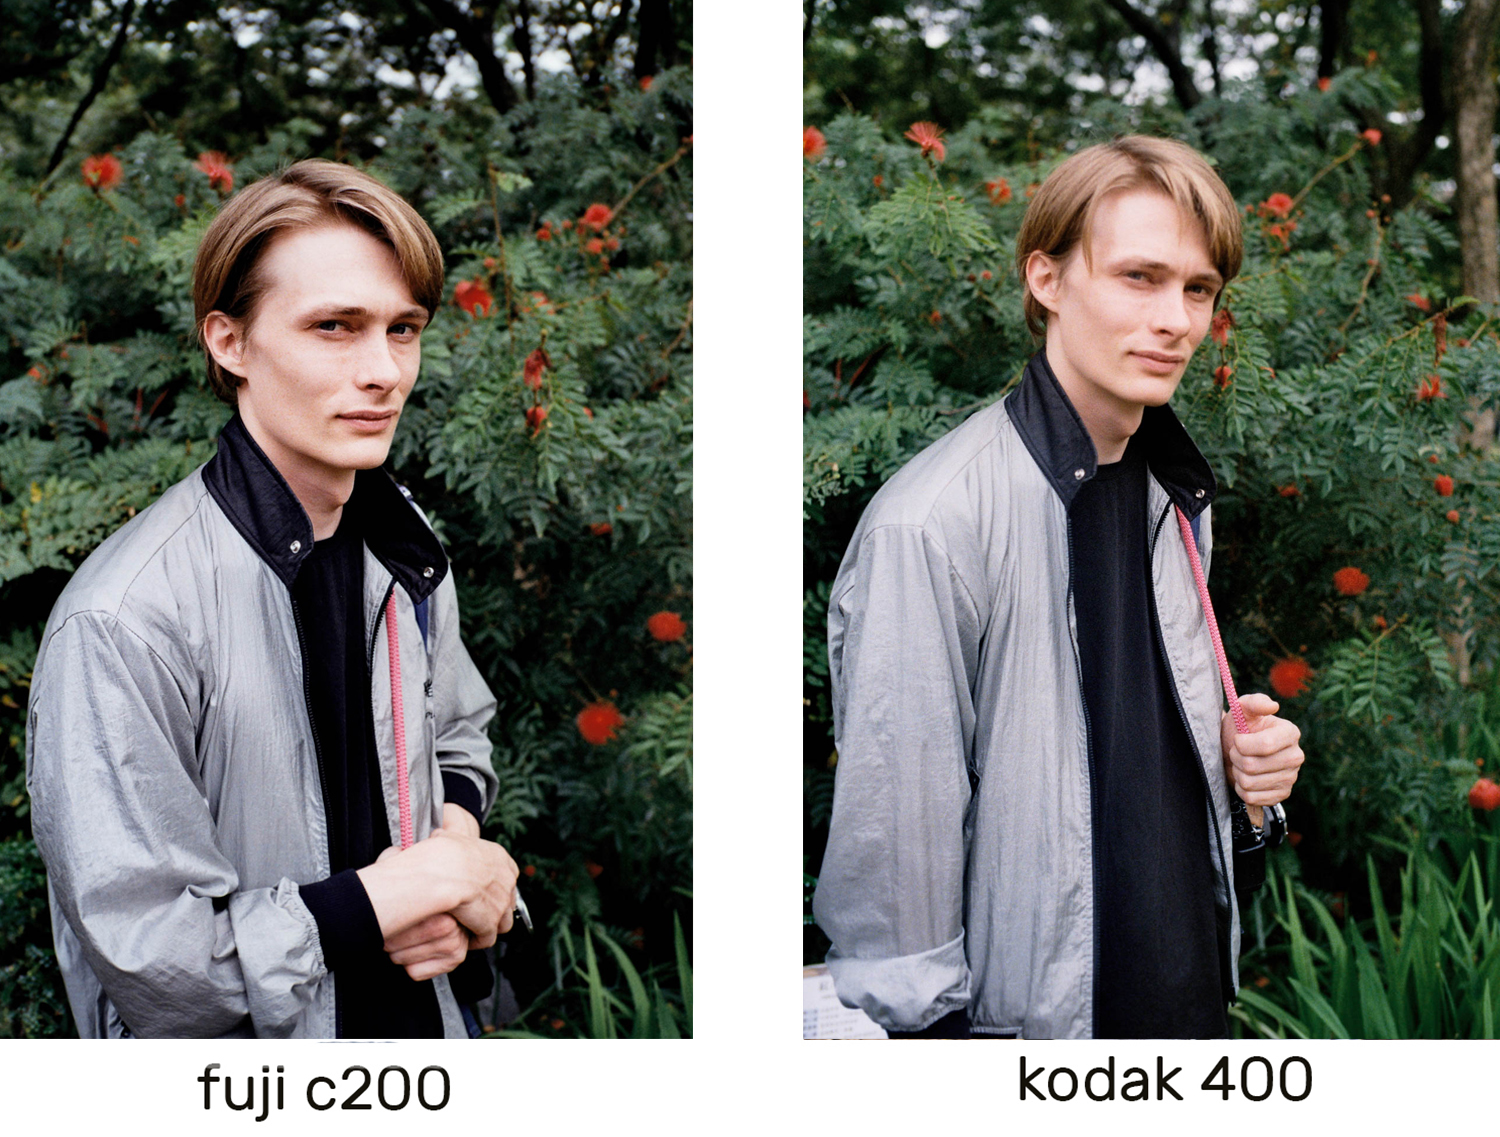 I expected a more vibrant red tonality in the Kodak, but they seem very similar.